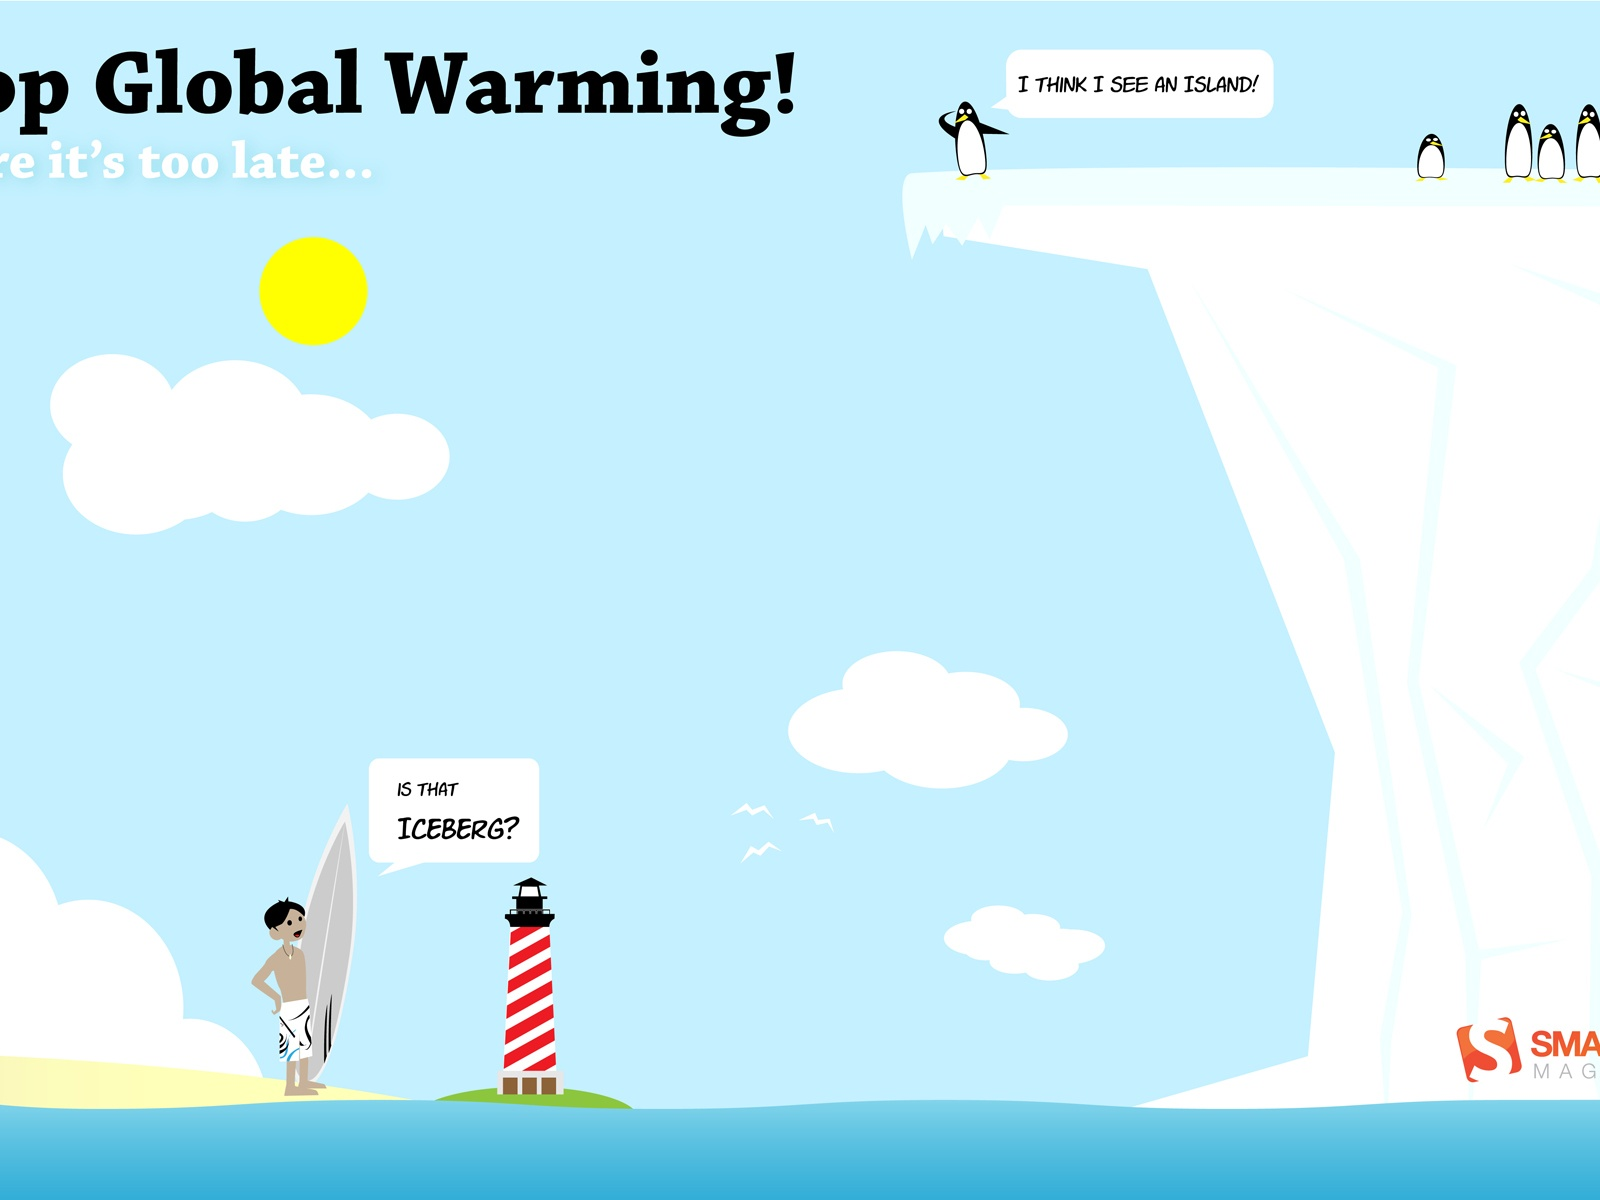 help stop global warming essay 20 new entries added to global warming essay, what is global warming, is global warming real, greenhouse effect, arguments against global warming, that include pictures 1 it's no surprise to most people that the idea of global warming is a highly controversial and debated topic.